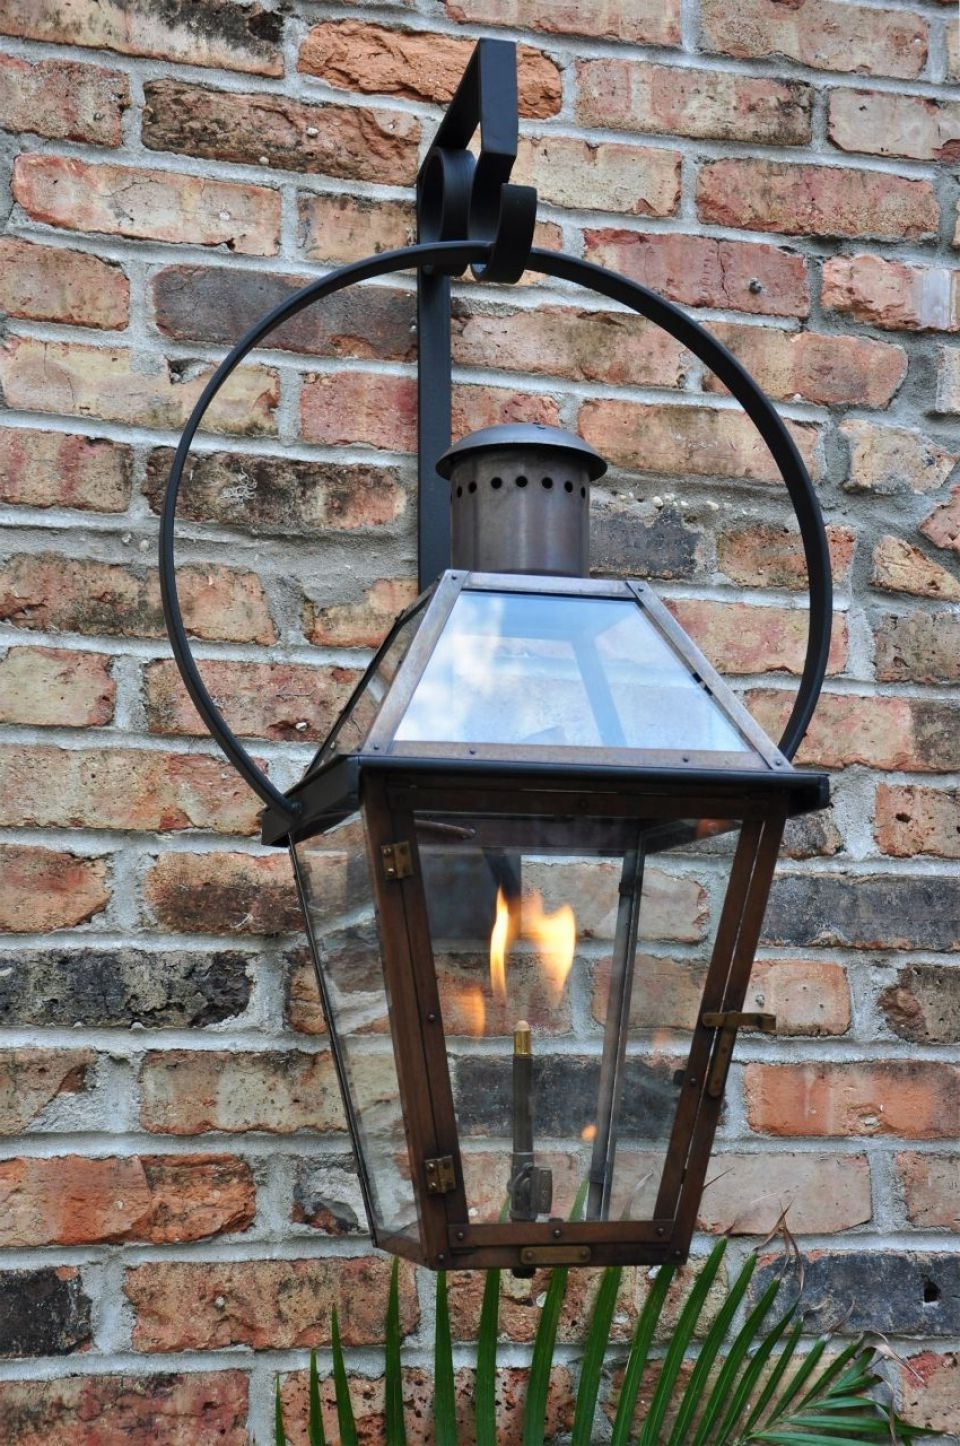 The French Quarter On Yoke Hanger Pertaining To Outdoor Hanging Gas Lanterns (View 18 of 20)